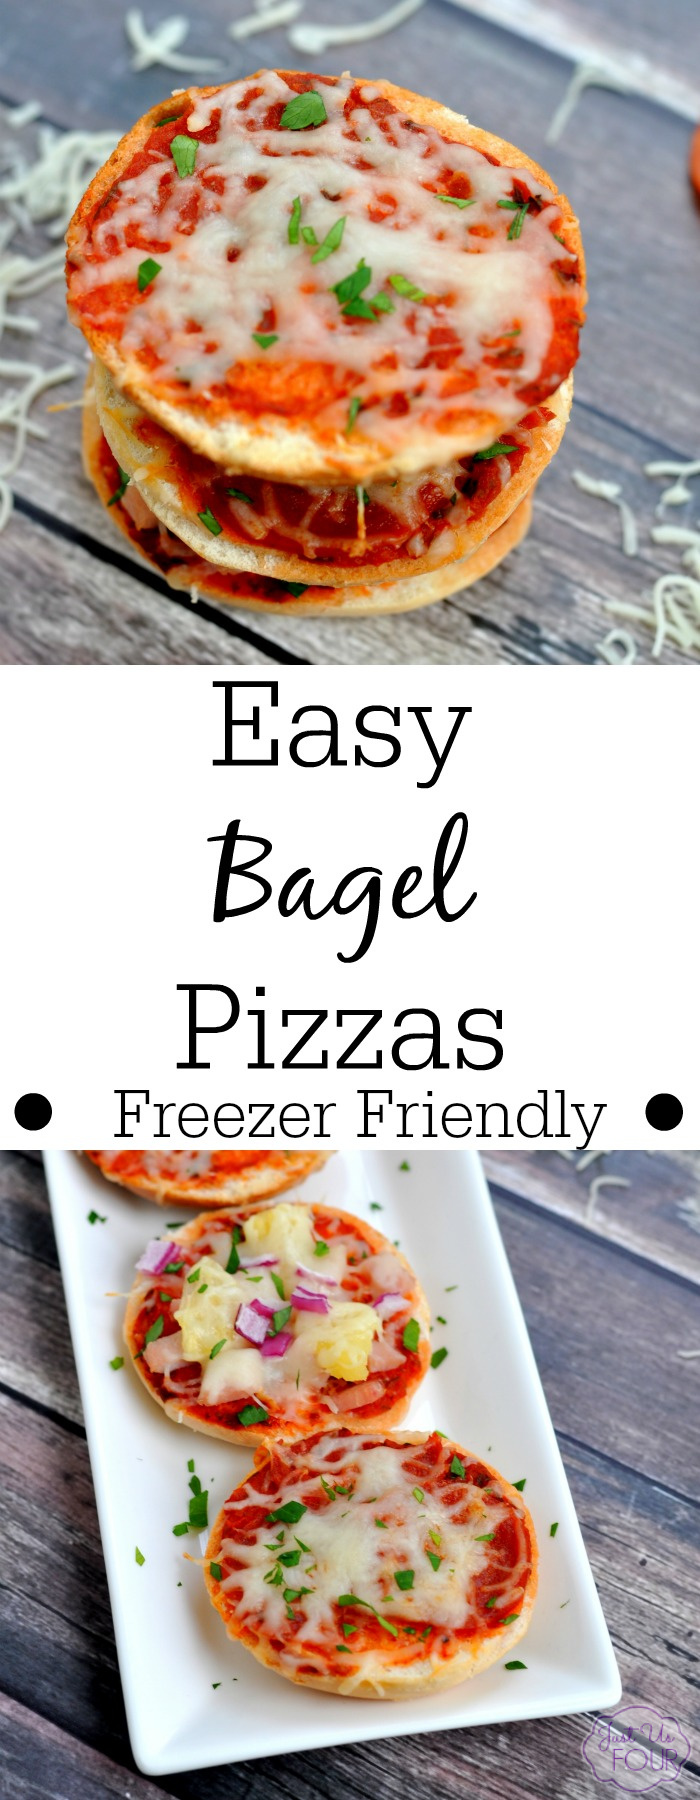 You have to try this recipe for freezer friendly bagel pizzas. They are so easy!